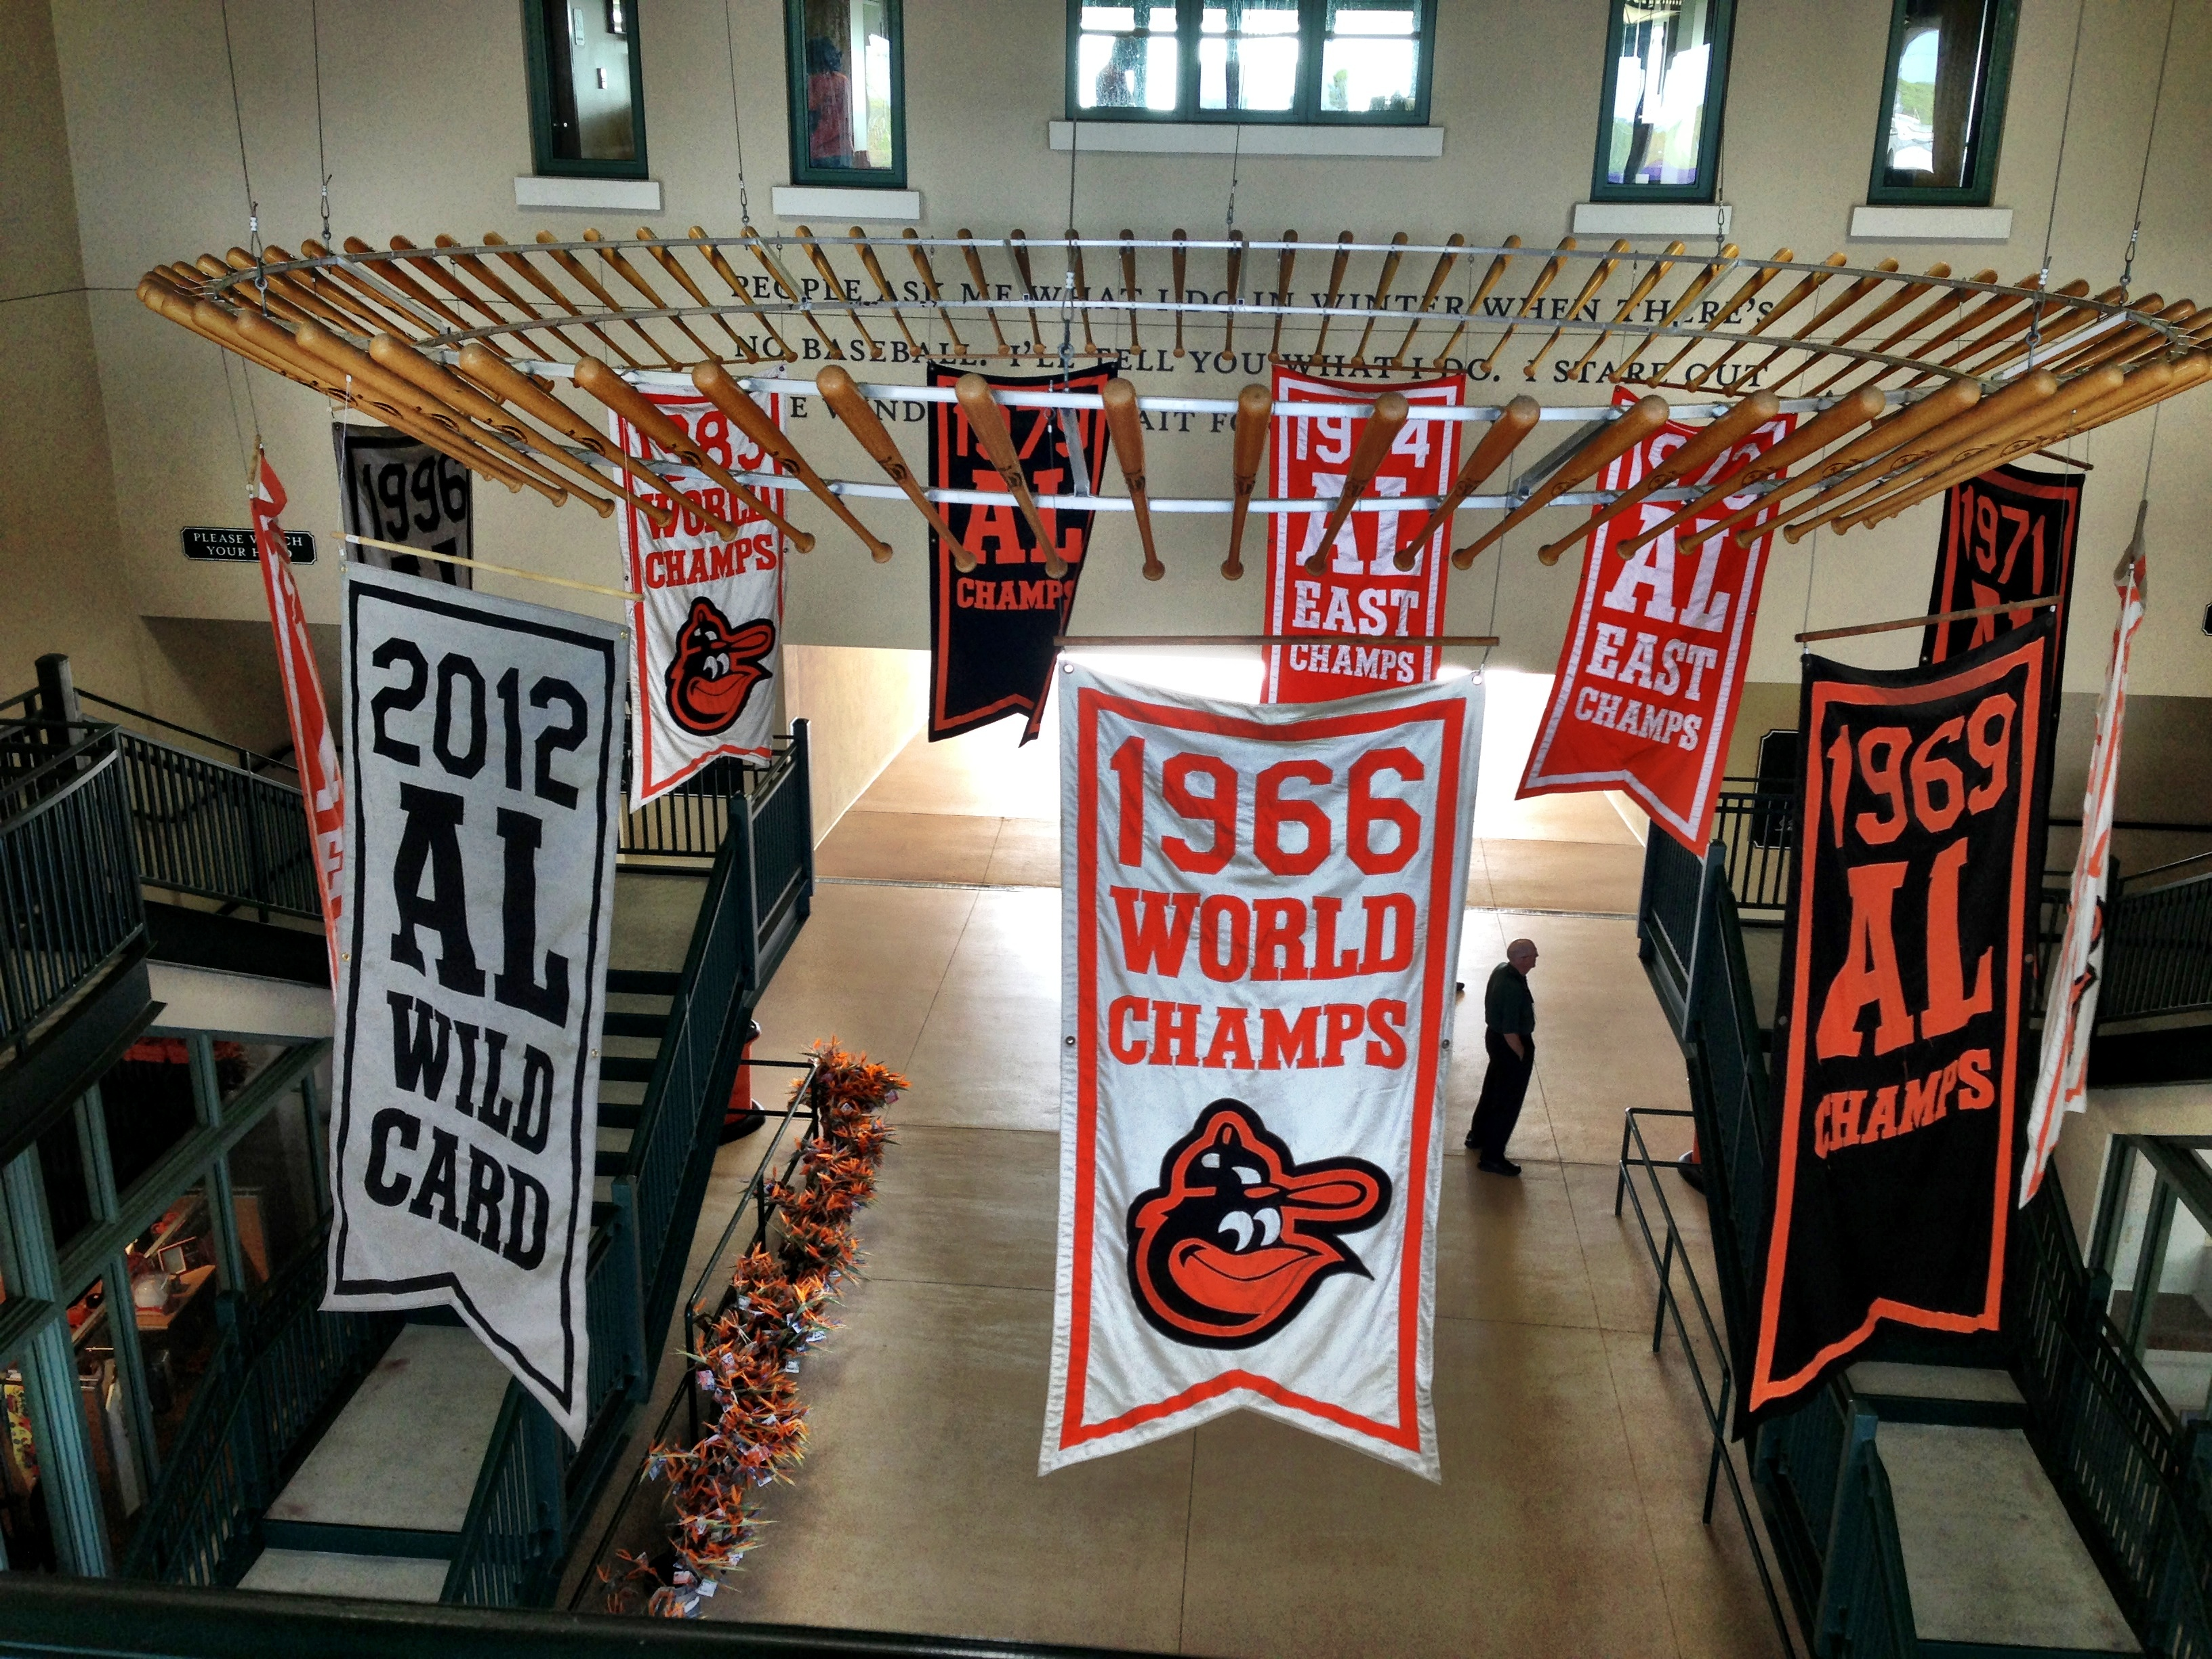 Orioles banners in main entrance